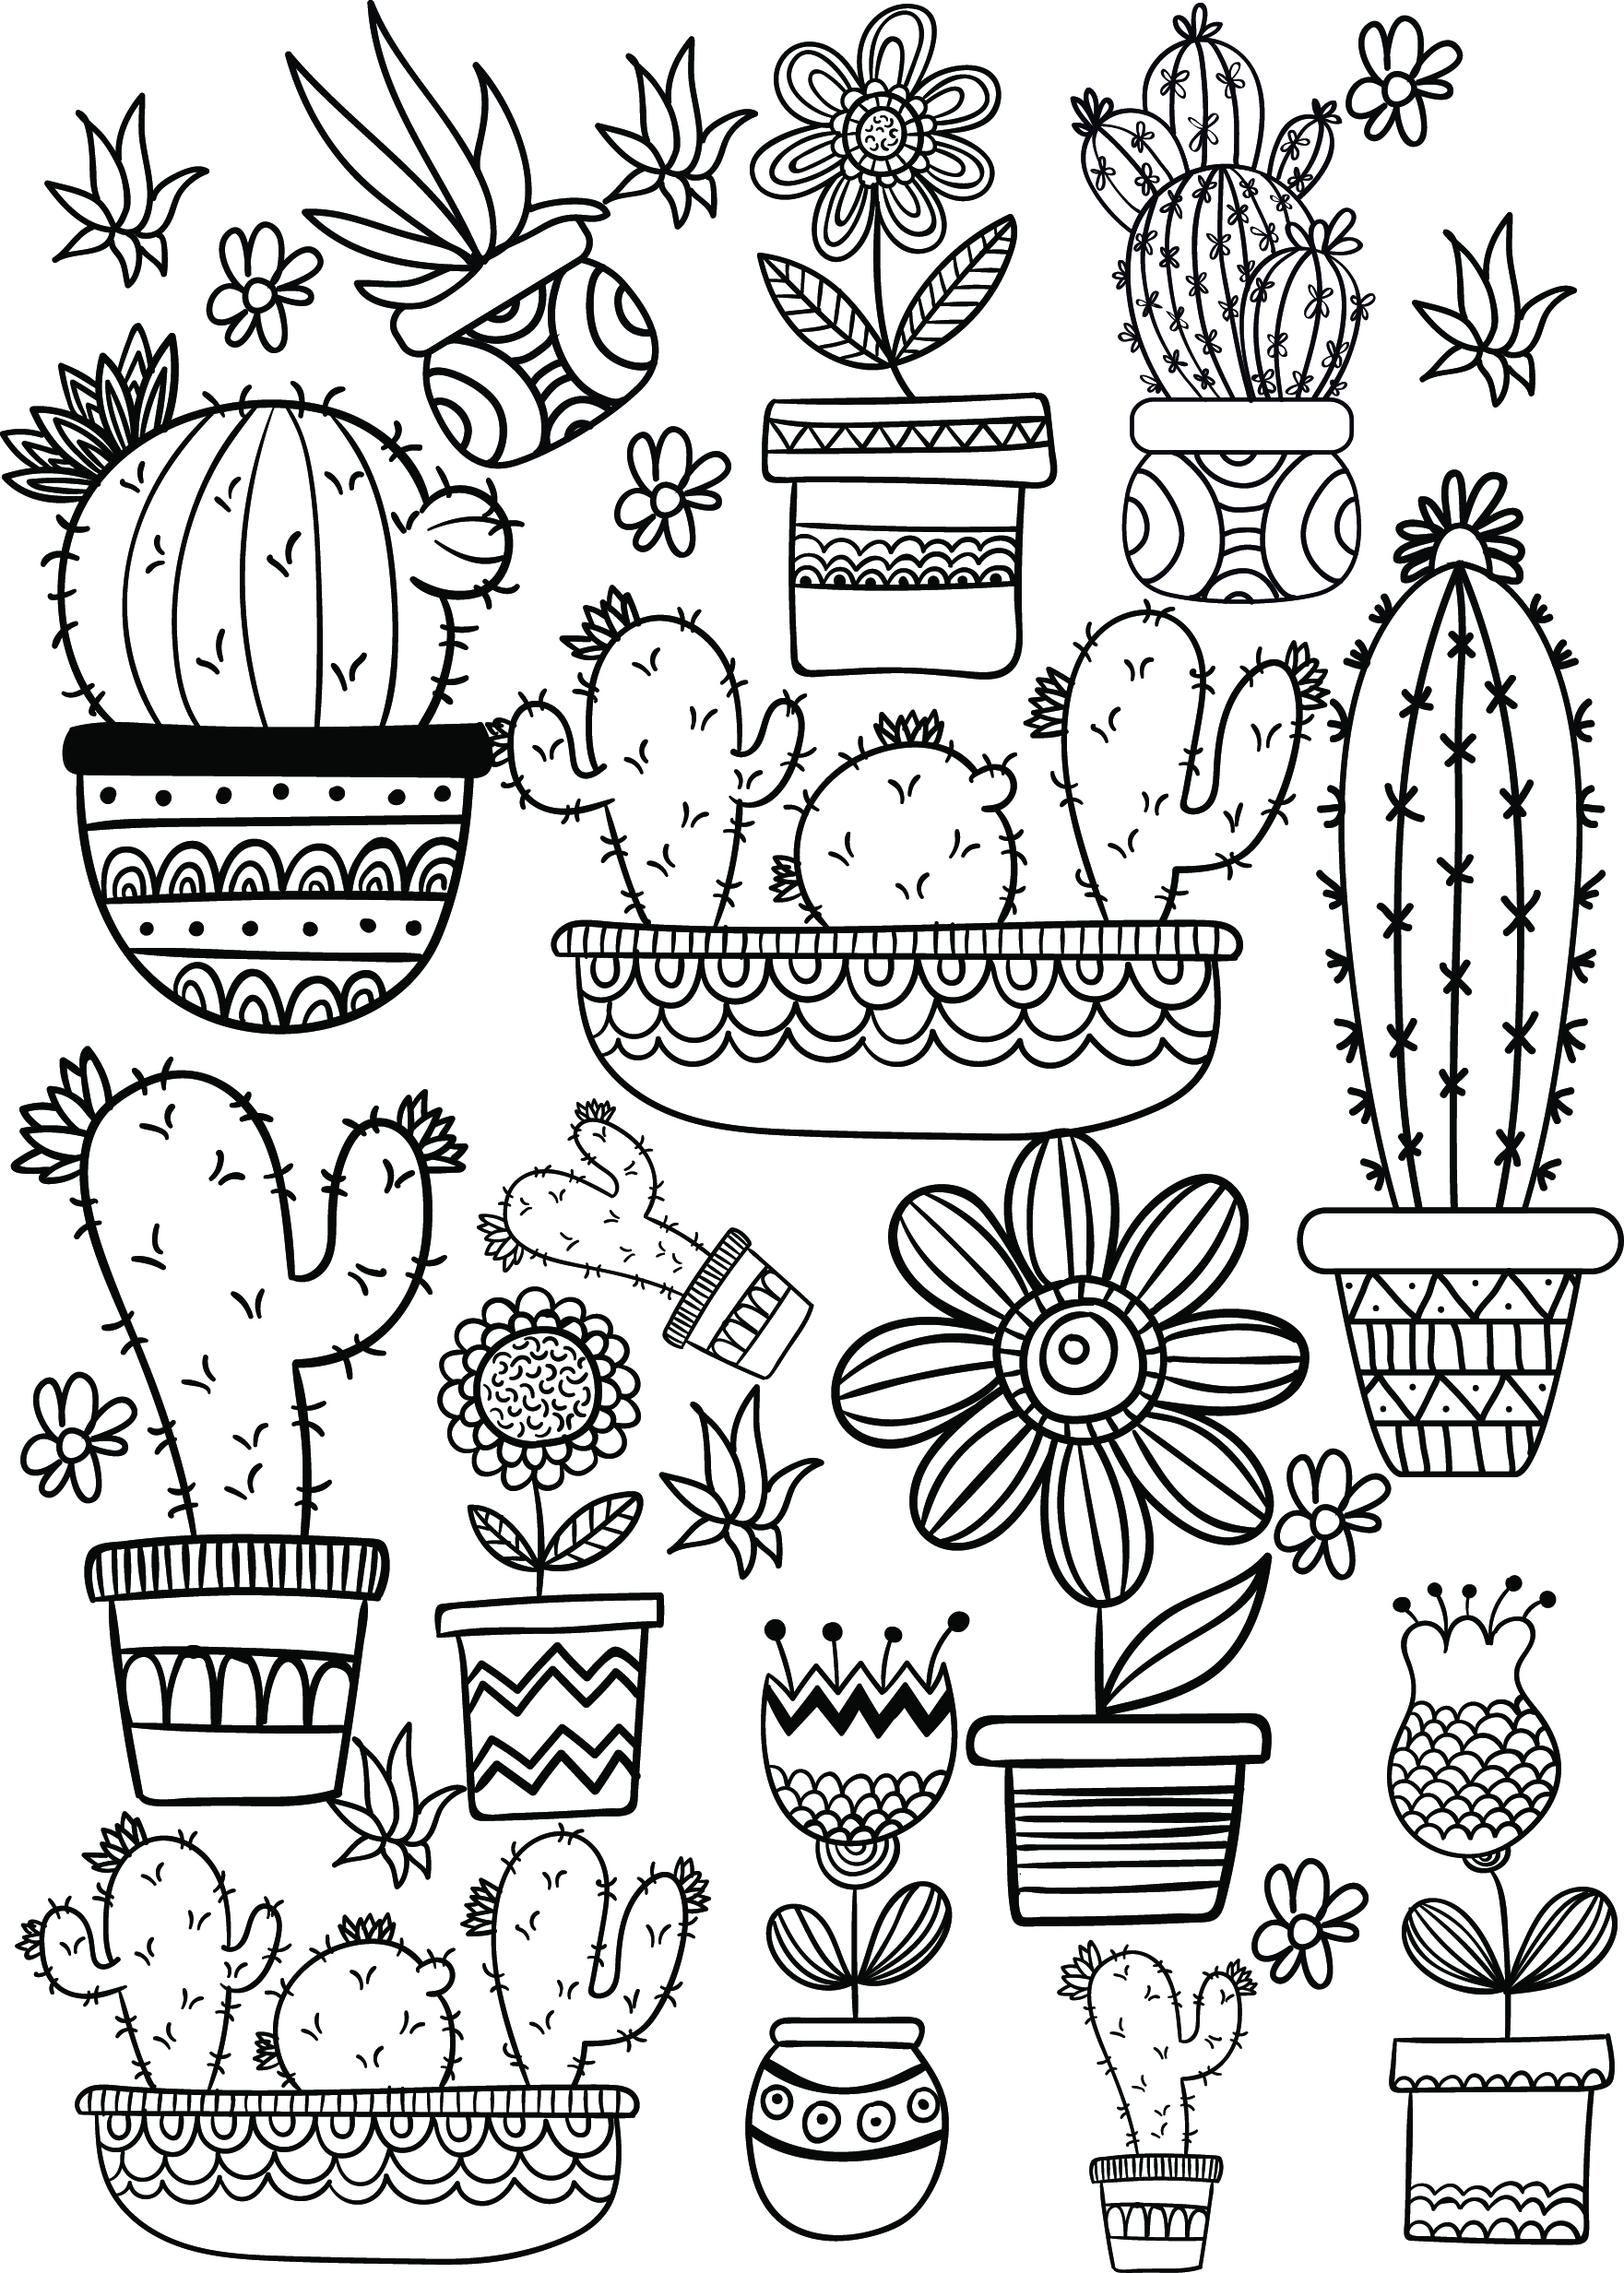 Cactus and Succulent Printable